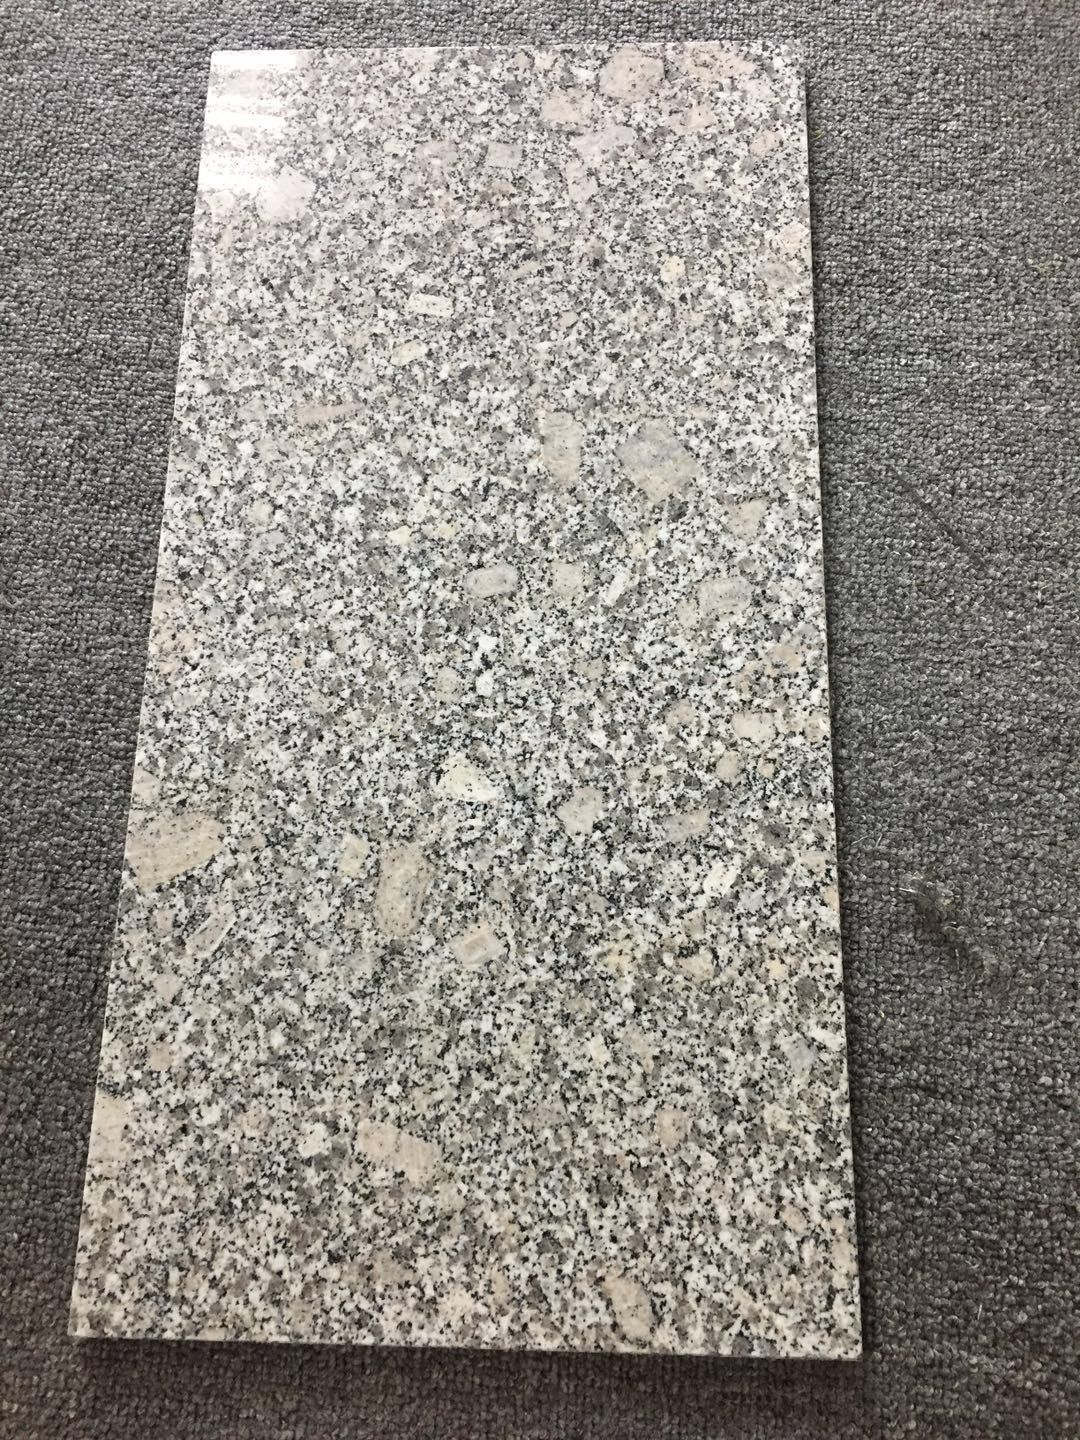 Gray with pink granite G602  cheap gray granite G602